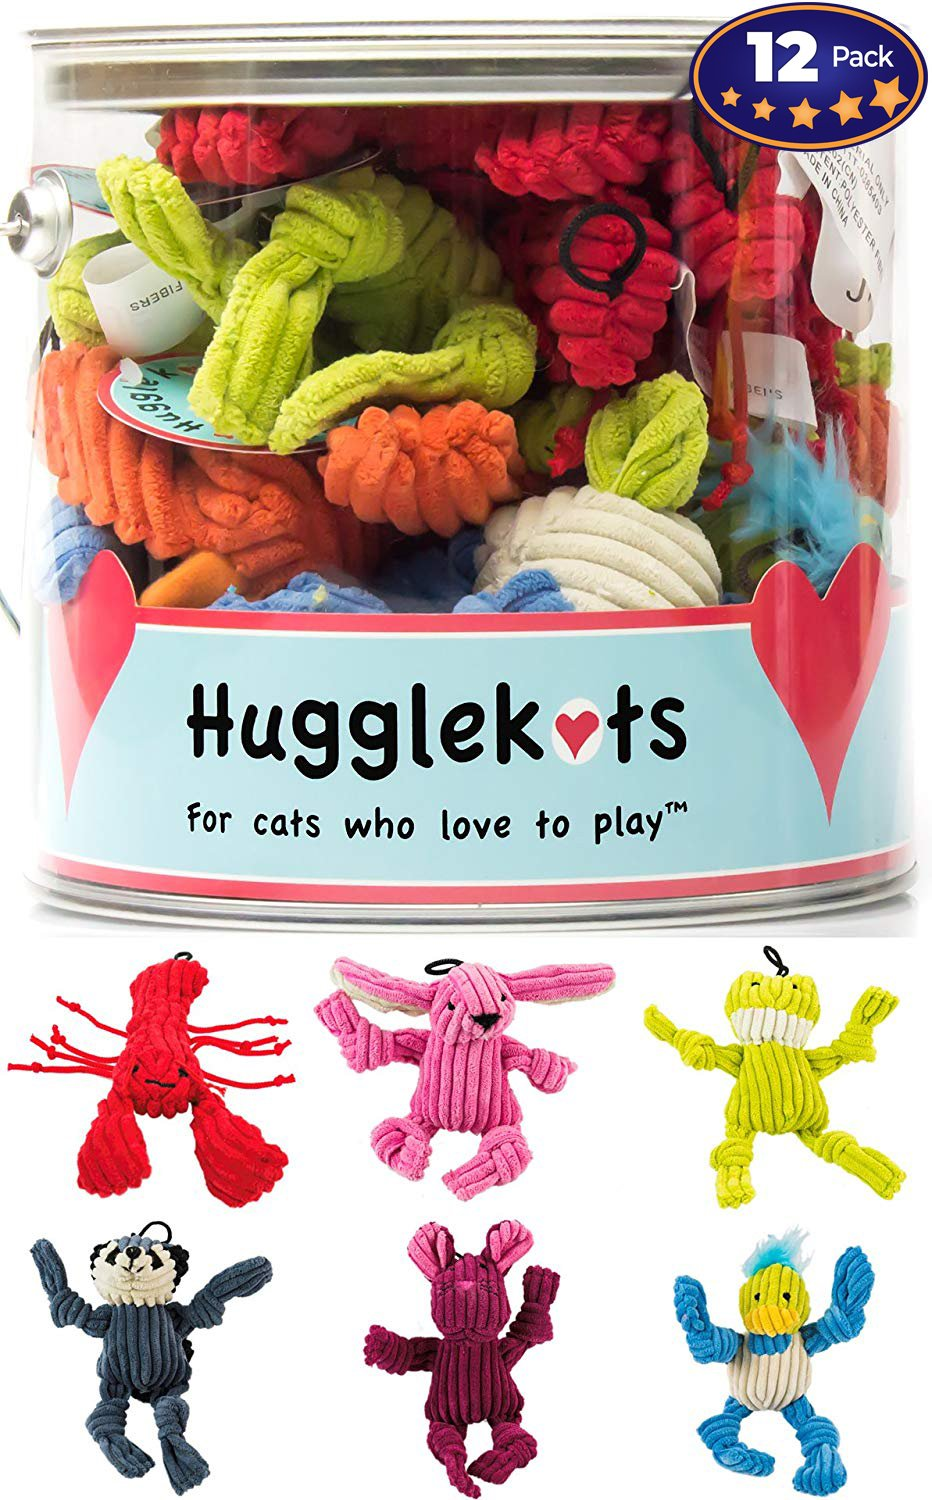 Plush Cat Toys With Catnip 12 Pack: Mini Animals. Each Bucket Comes With 3 Varieties of Stuffed Cat Toy Designs. Twelve Toy Value Pack Plus a Fun Storage Container. Squeeze to Release Catnip Scent!